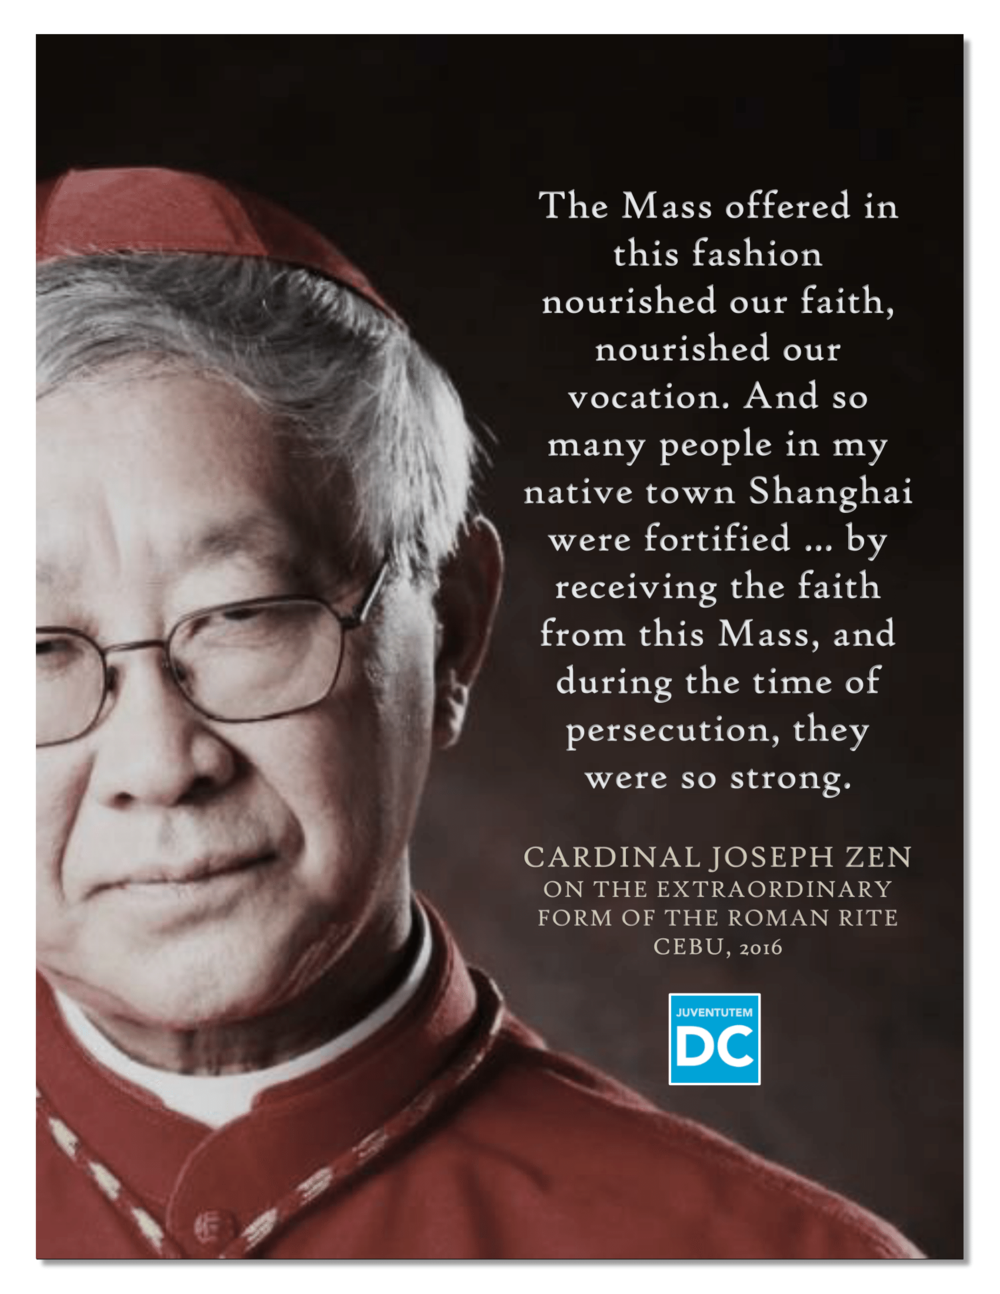 Cardinal Zen TLM quote-1.png